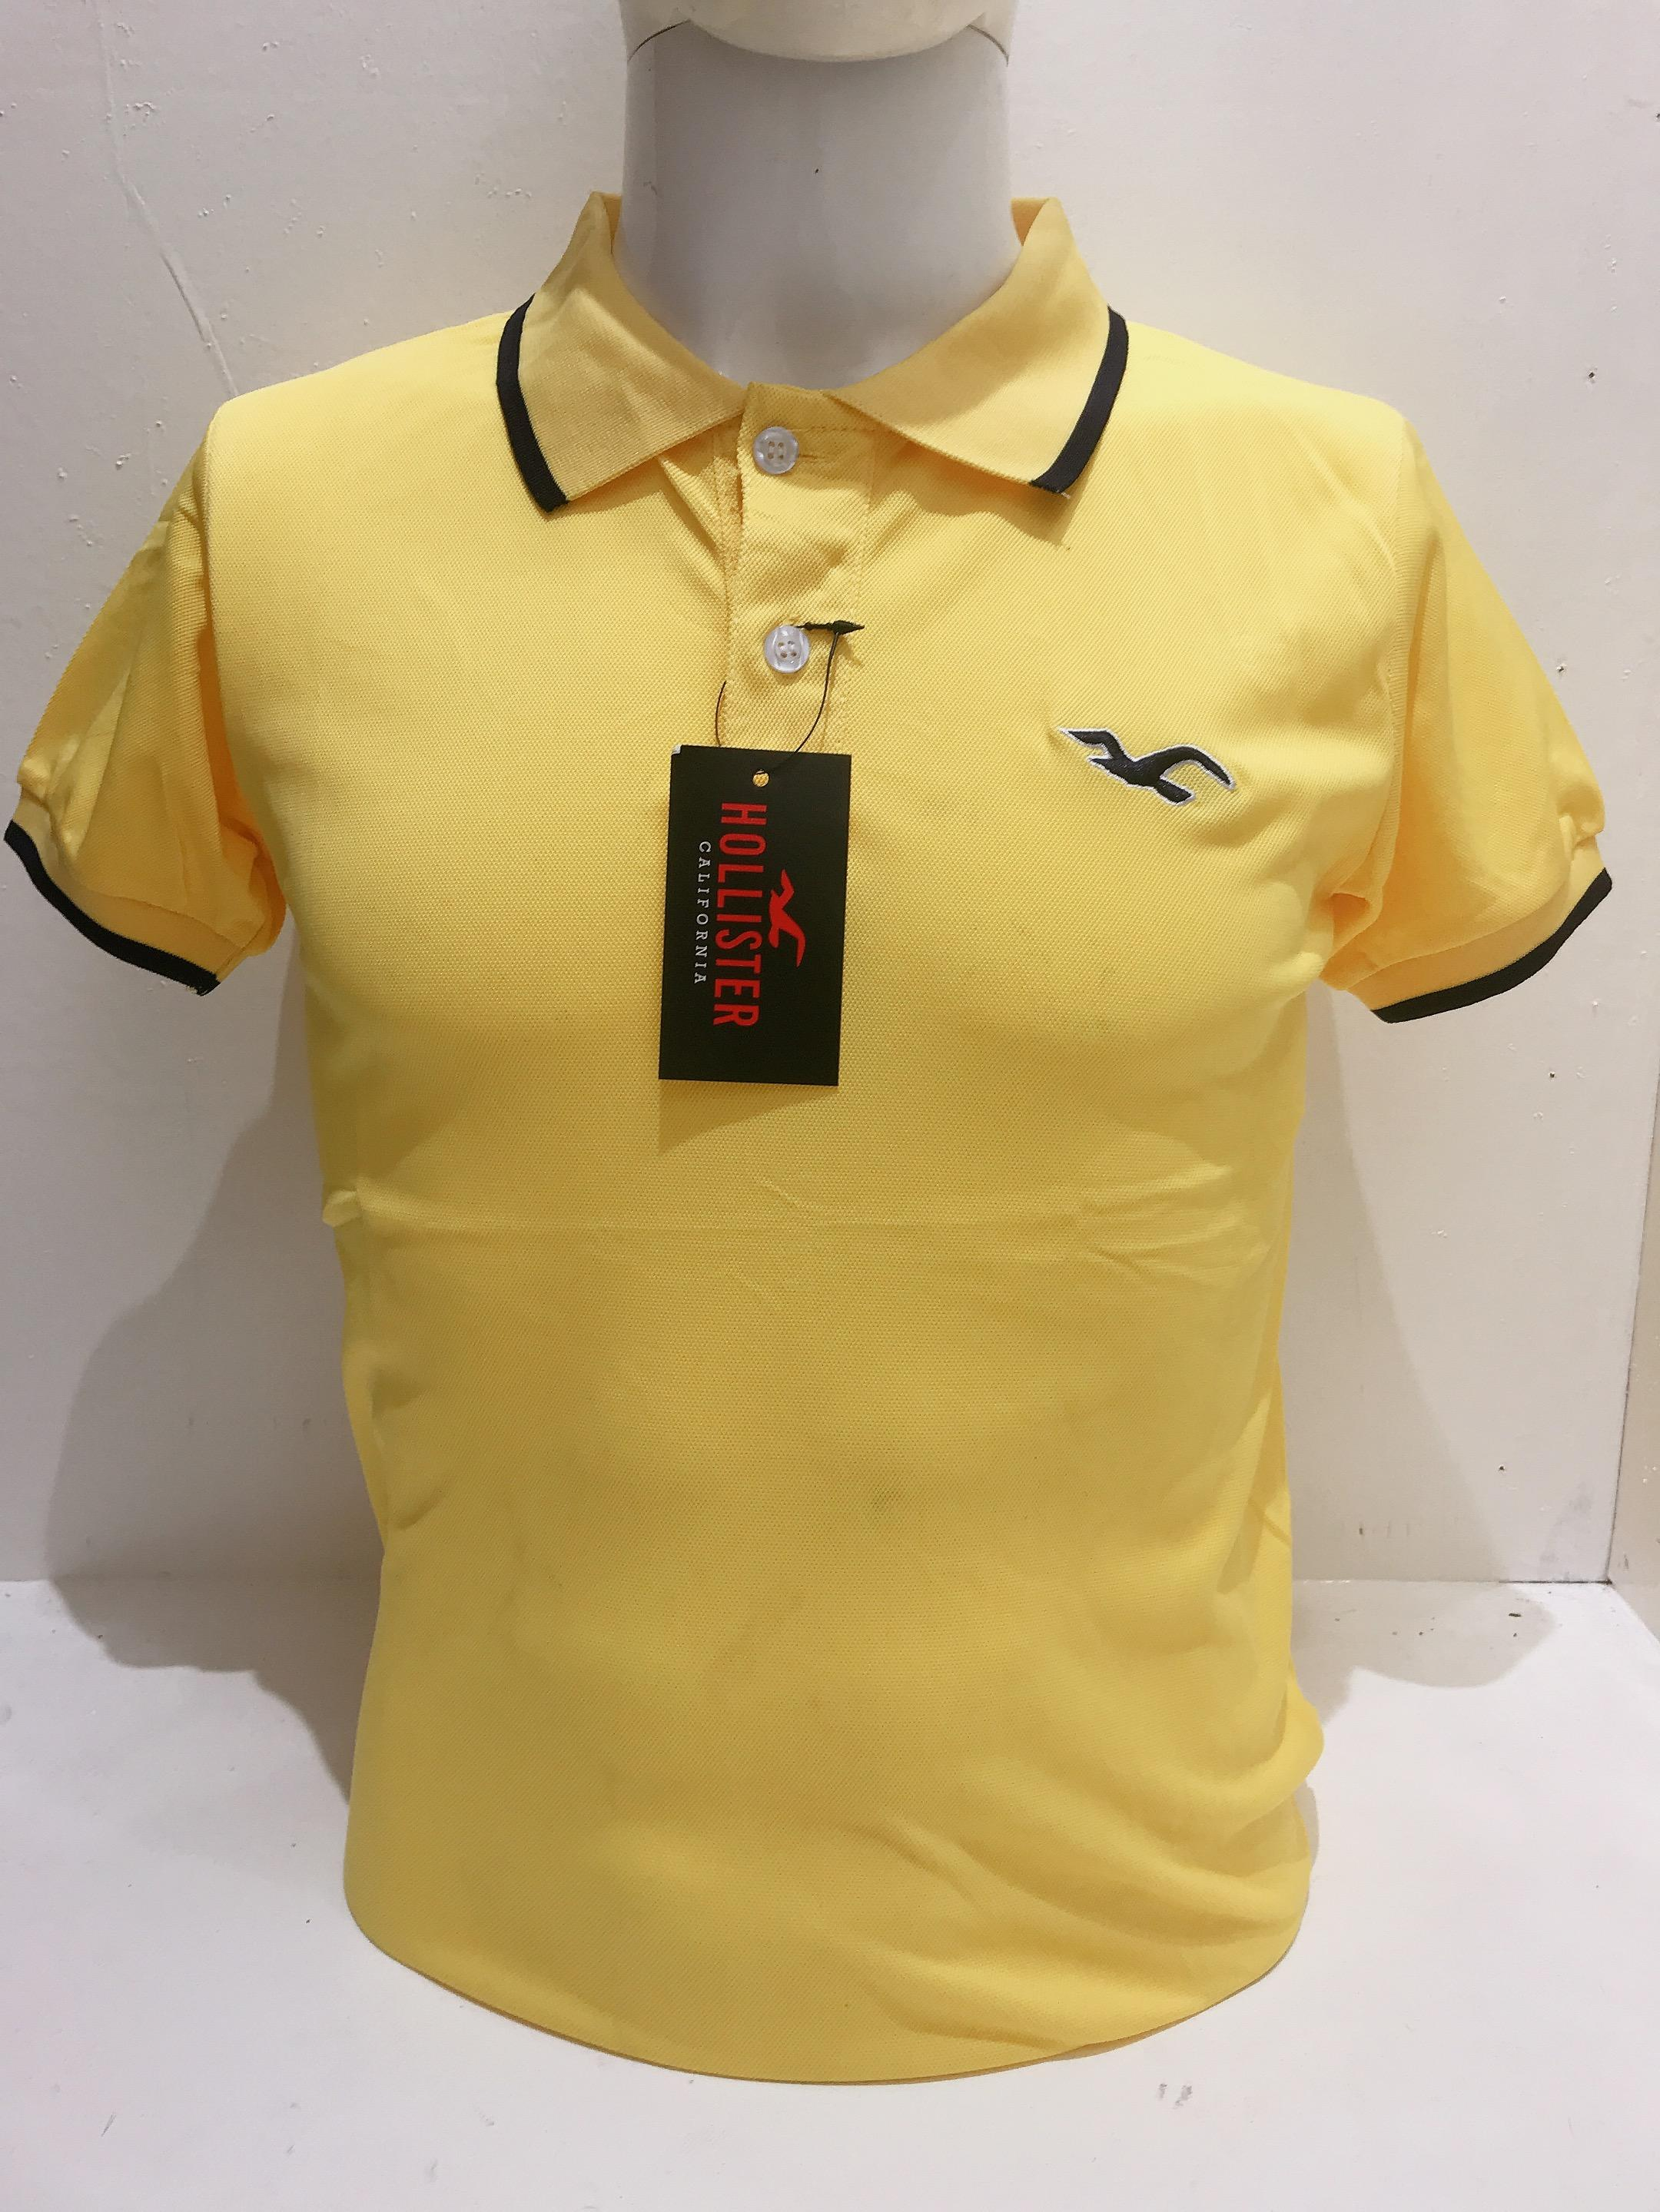 8738f9fae03 POLO shirt for men frde perry Abercrombie fitch Hollister